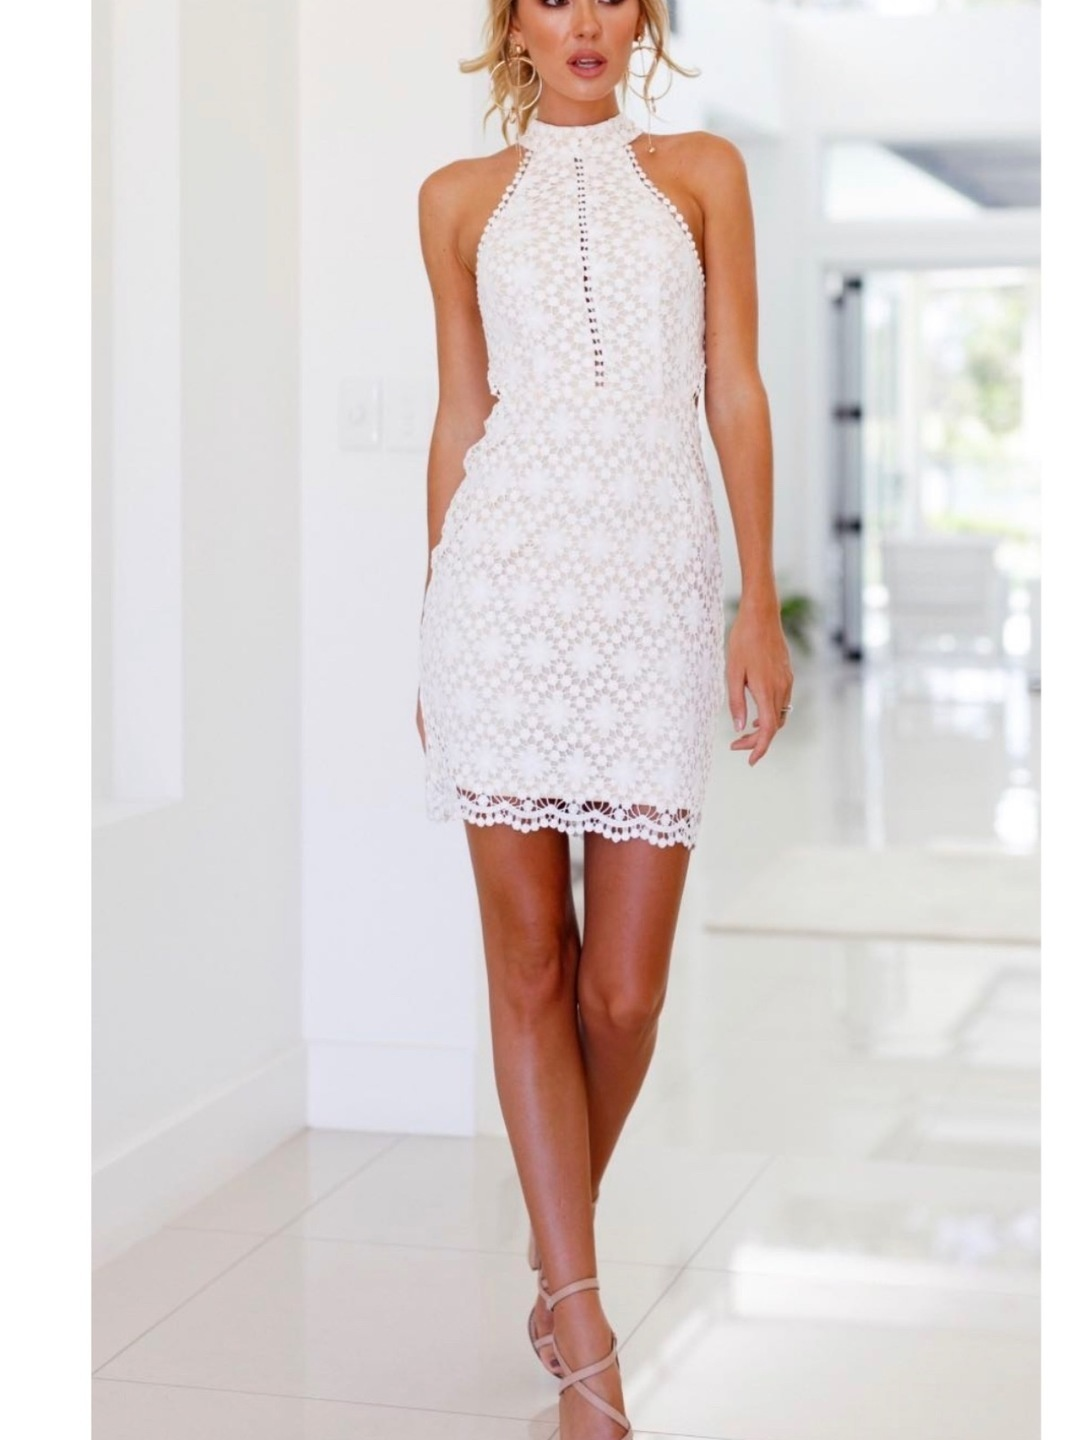 Women's dresses - MURA BOUTIQUE photo 4